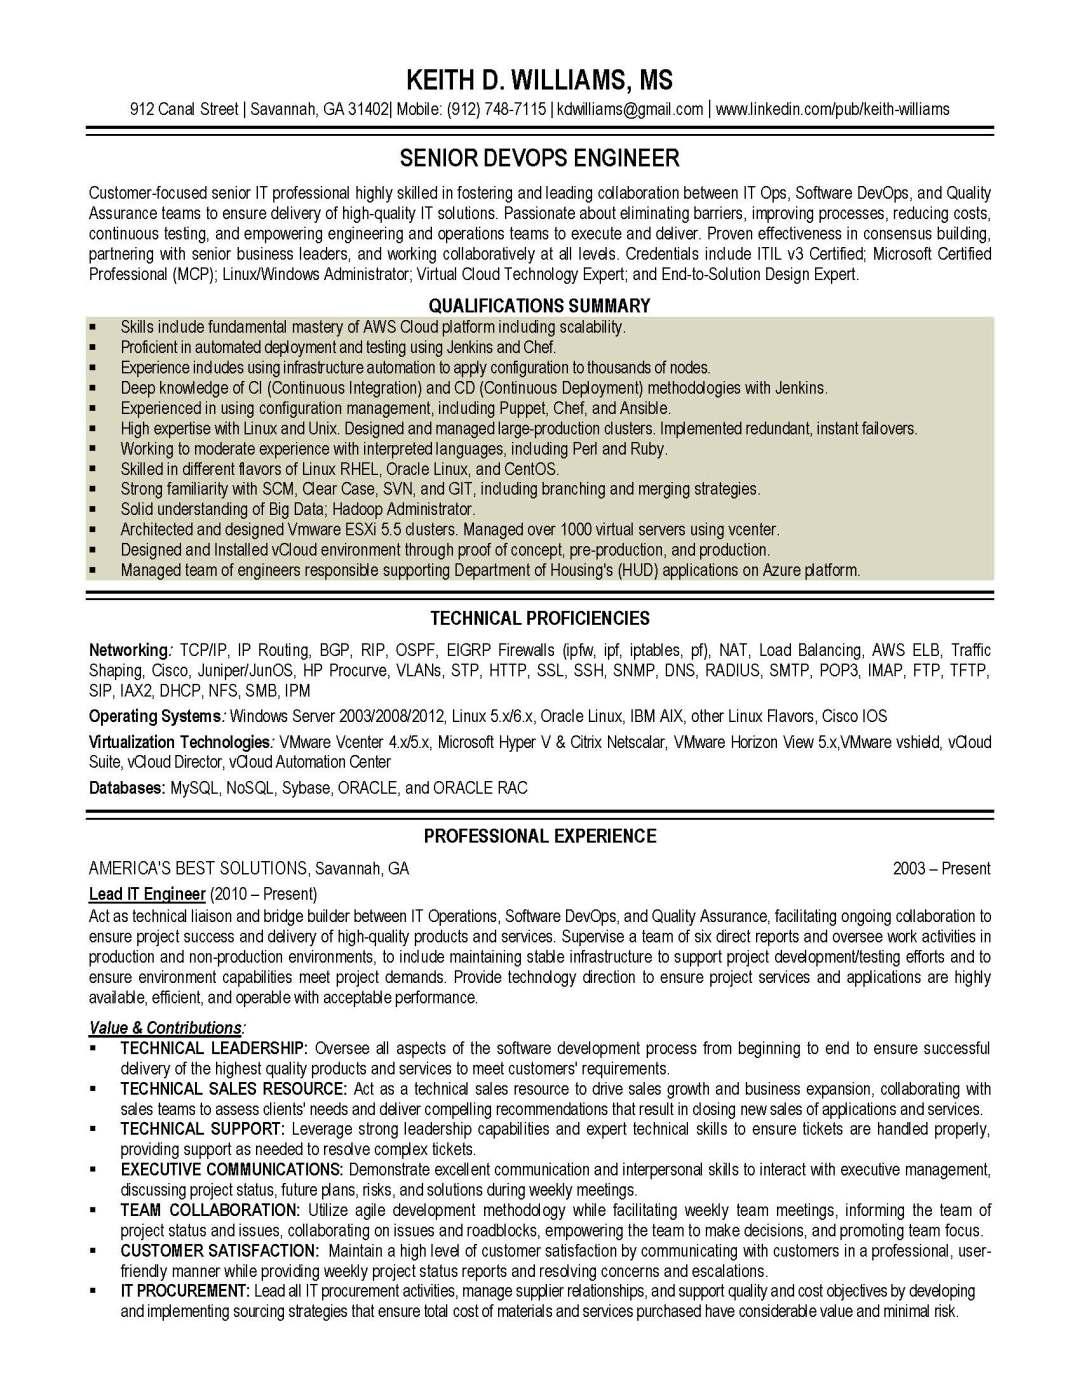 IT resume sample 2, provided by Elite Resume Writing Services